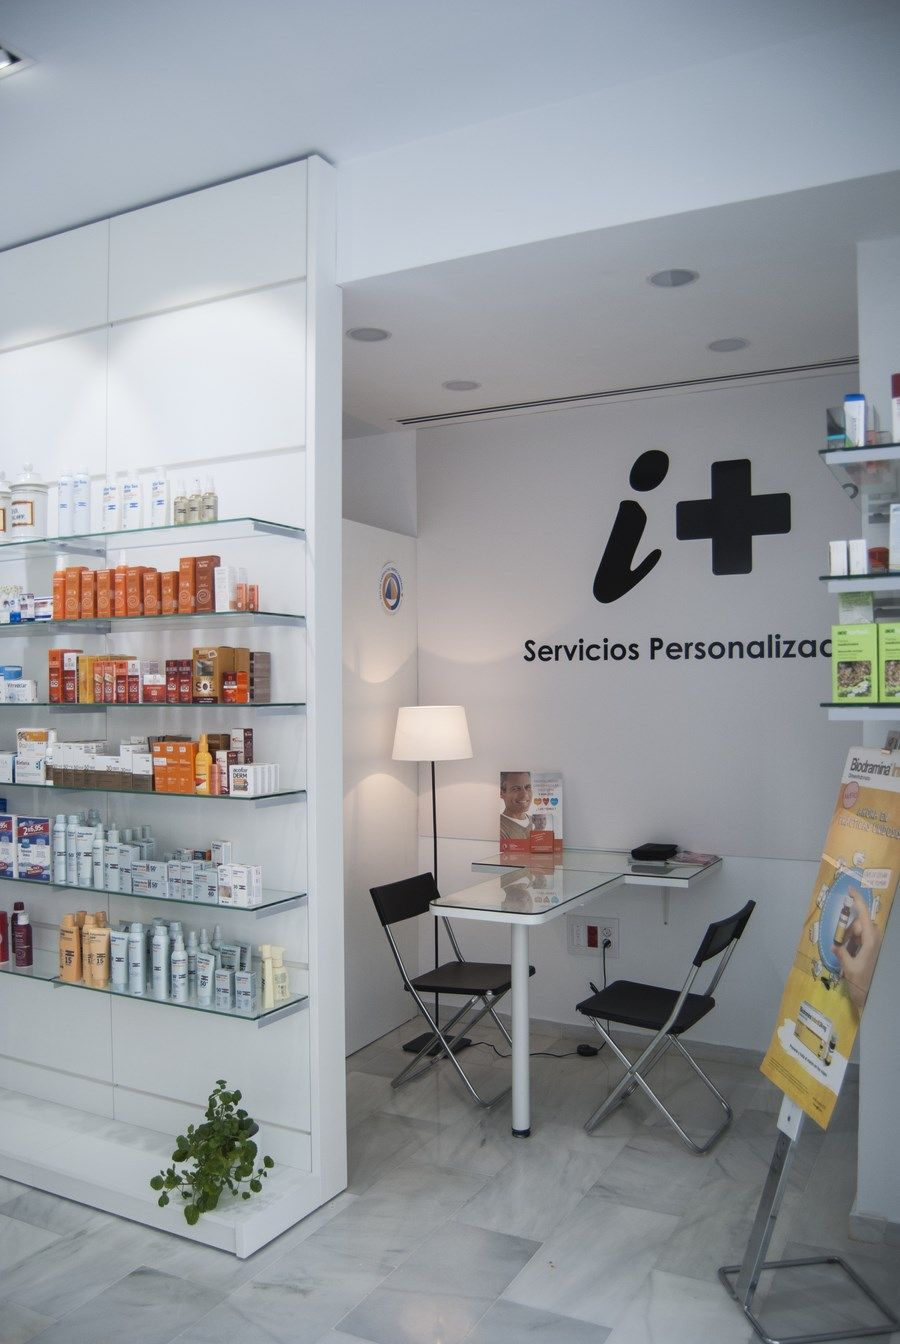 La idea proyectos farmacia catalana de gas escaparates de farmacia en 2019 - Proyectos de farmacia ...